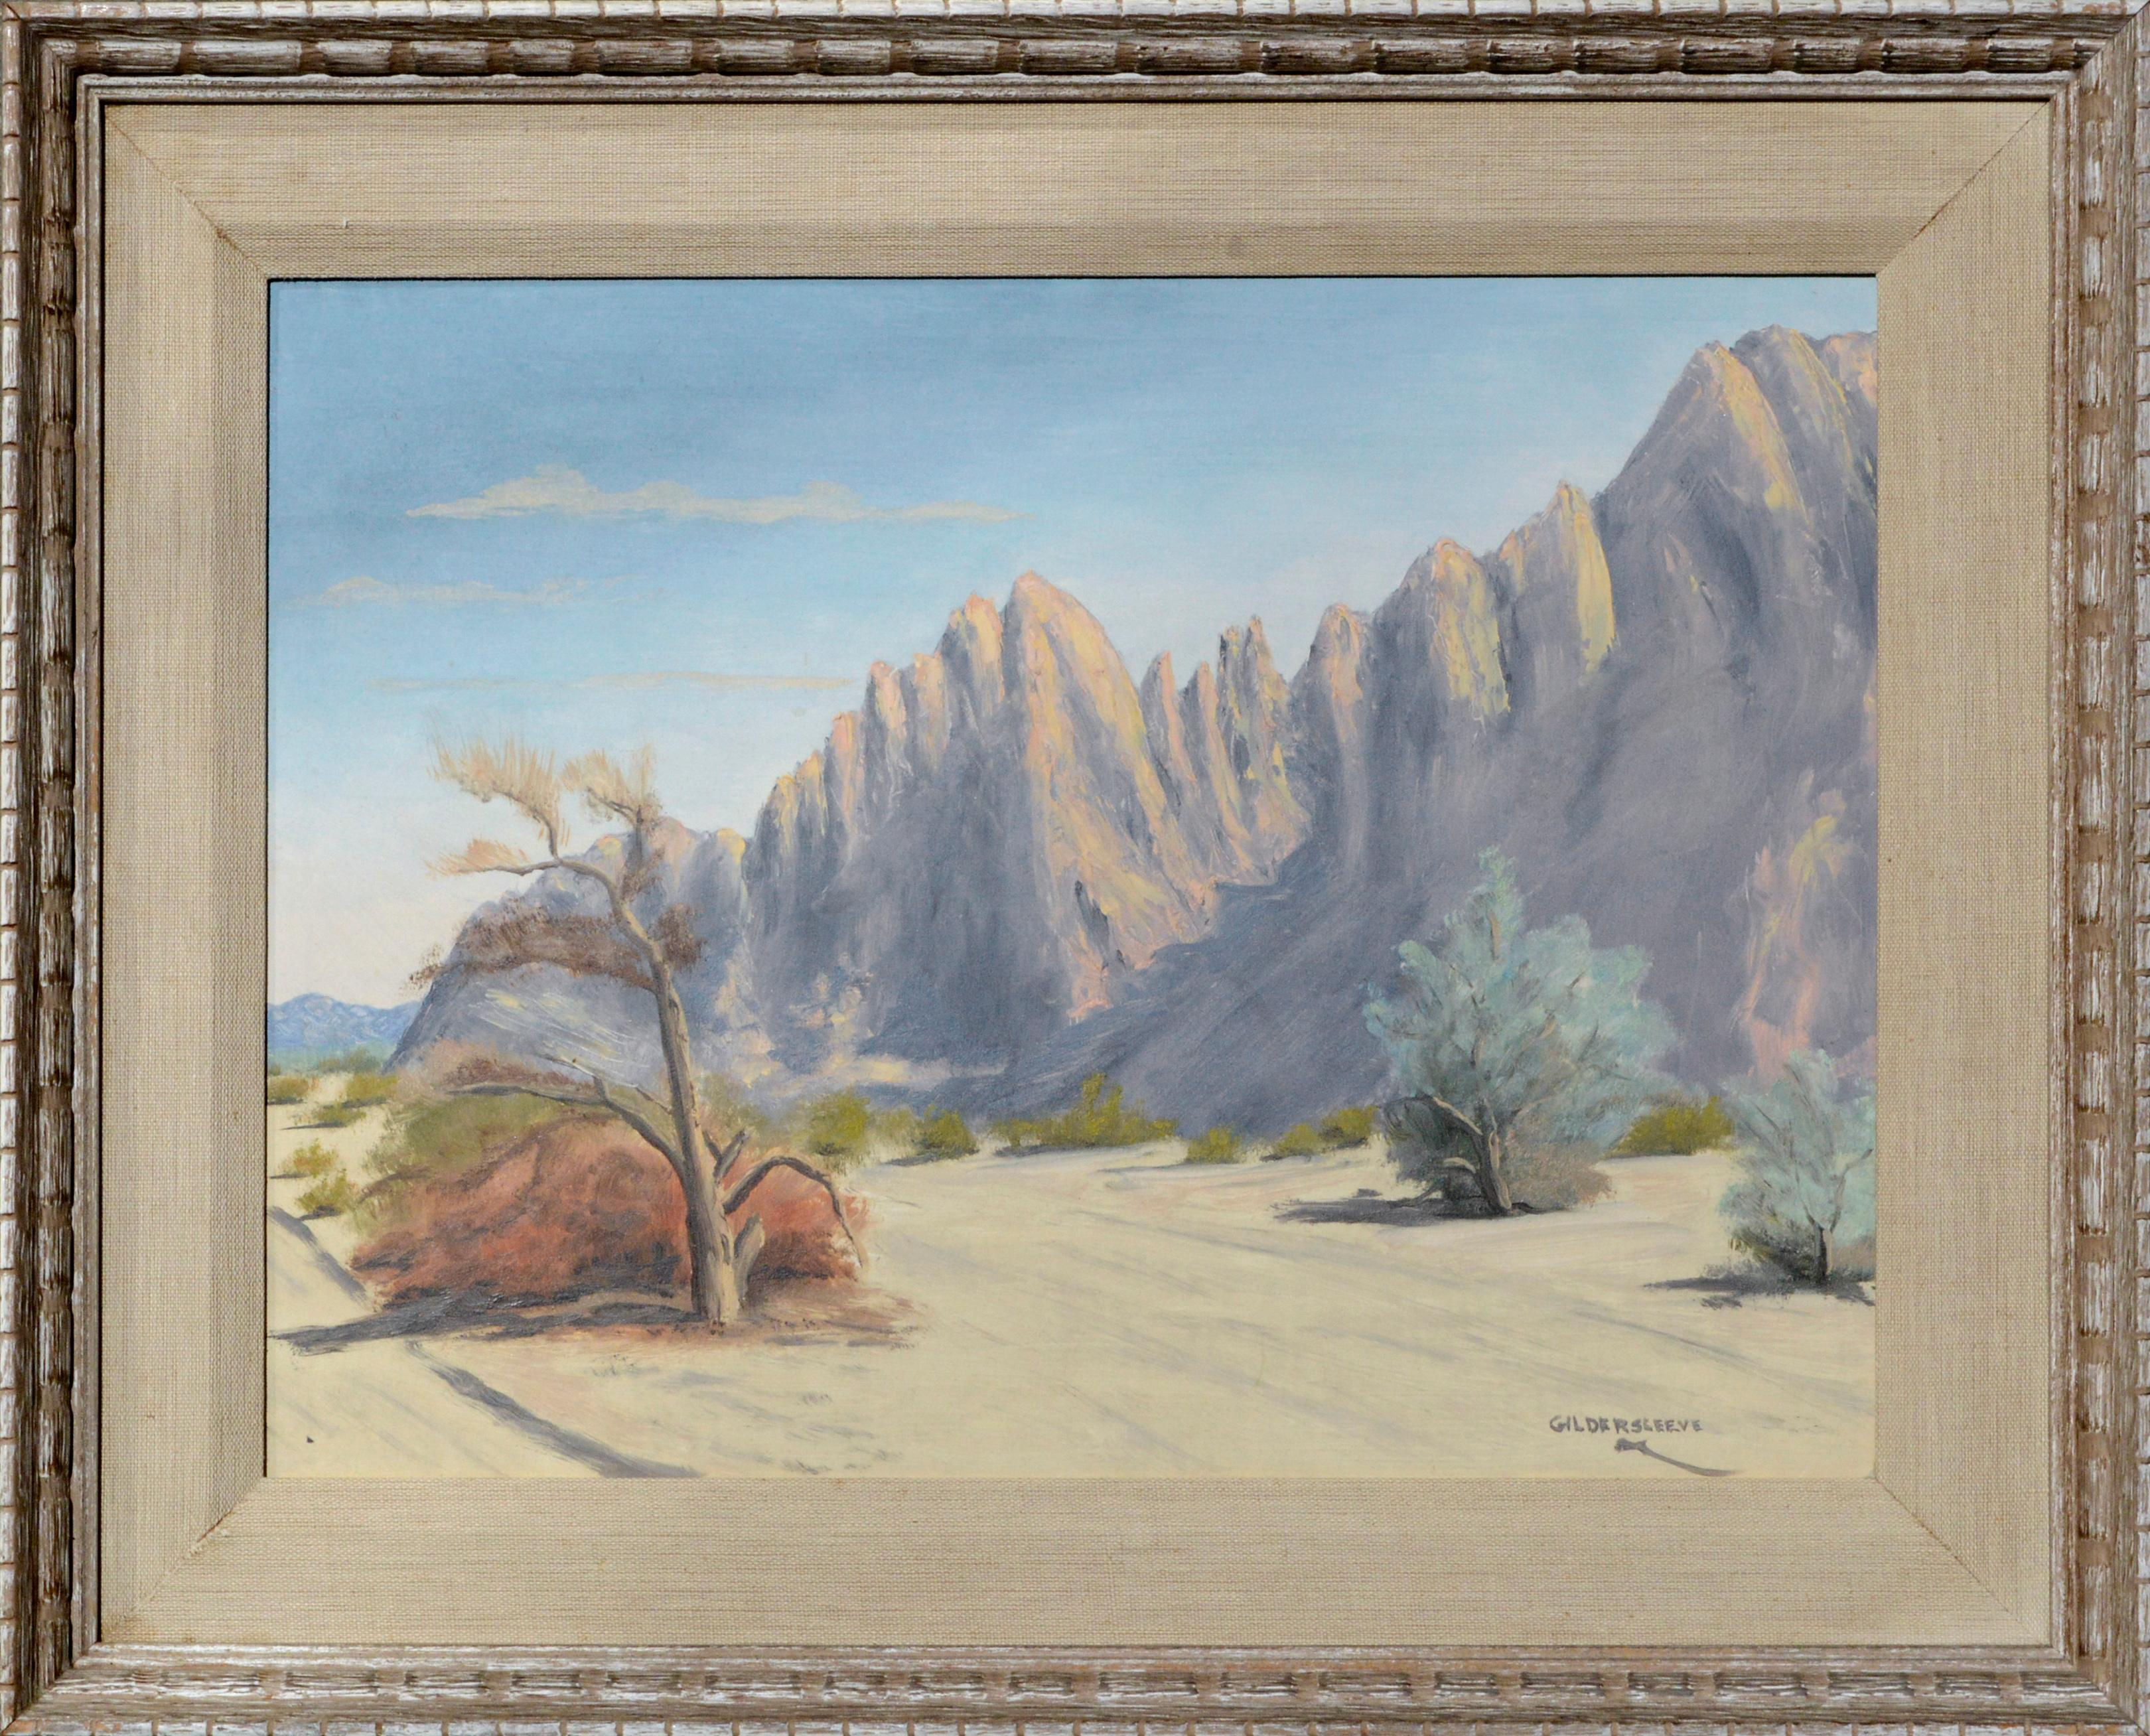 Early 20th Century Mountains and the Desert Landscape